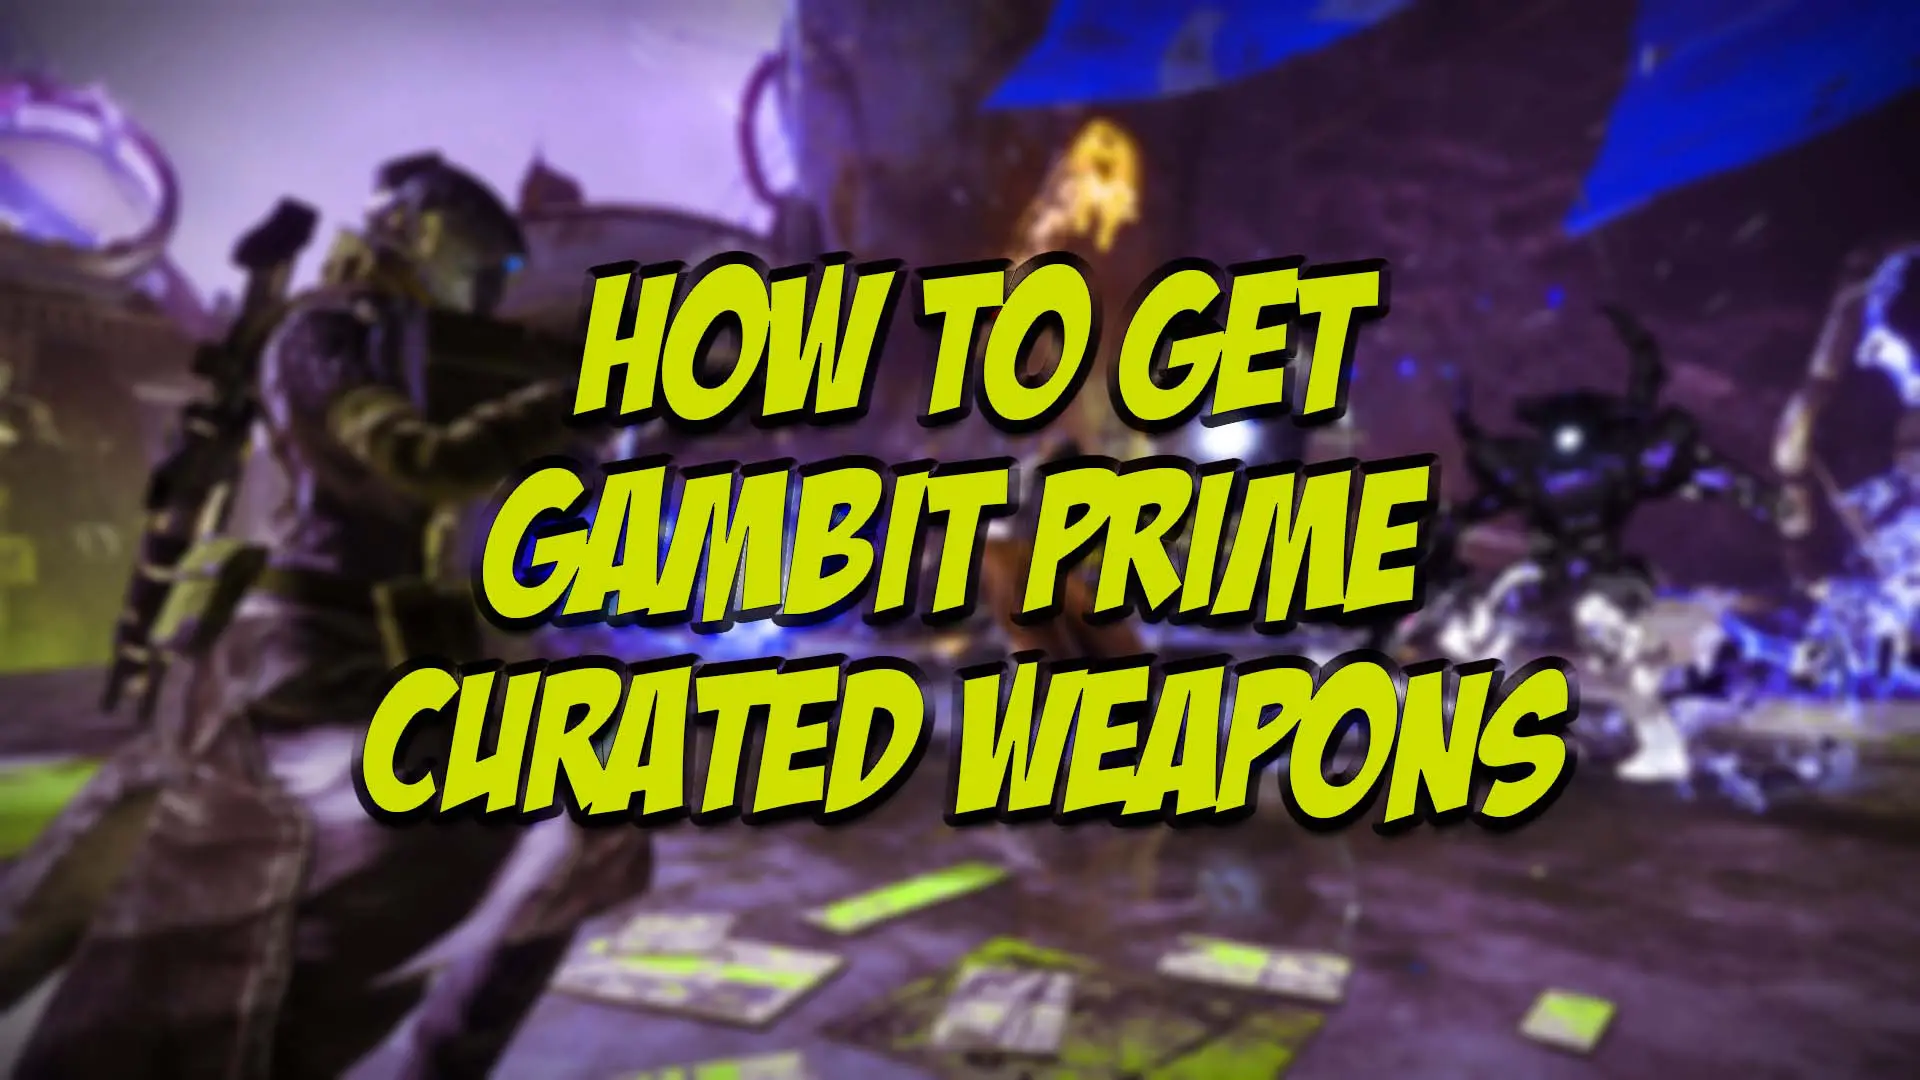 How To Get Curated Weapons Gambit Prime